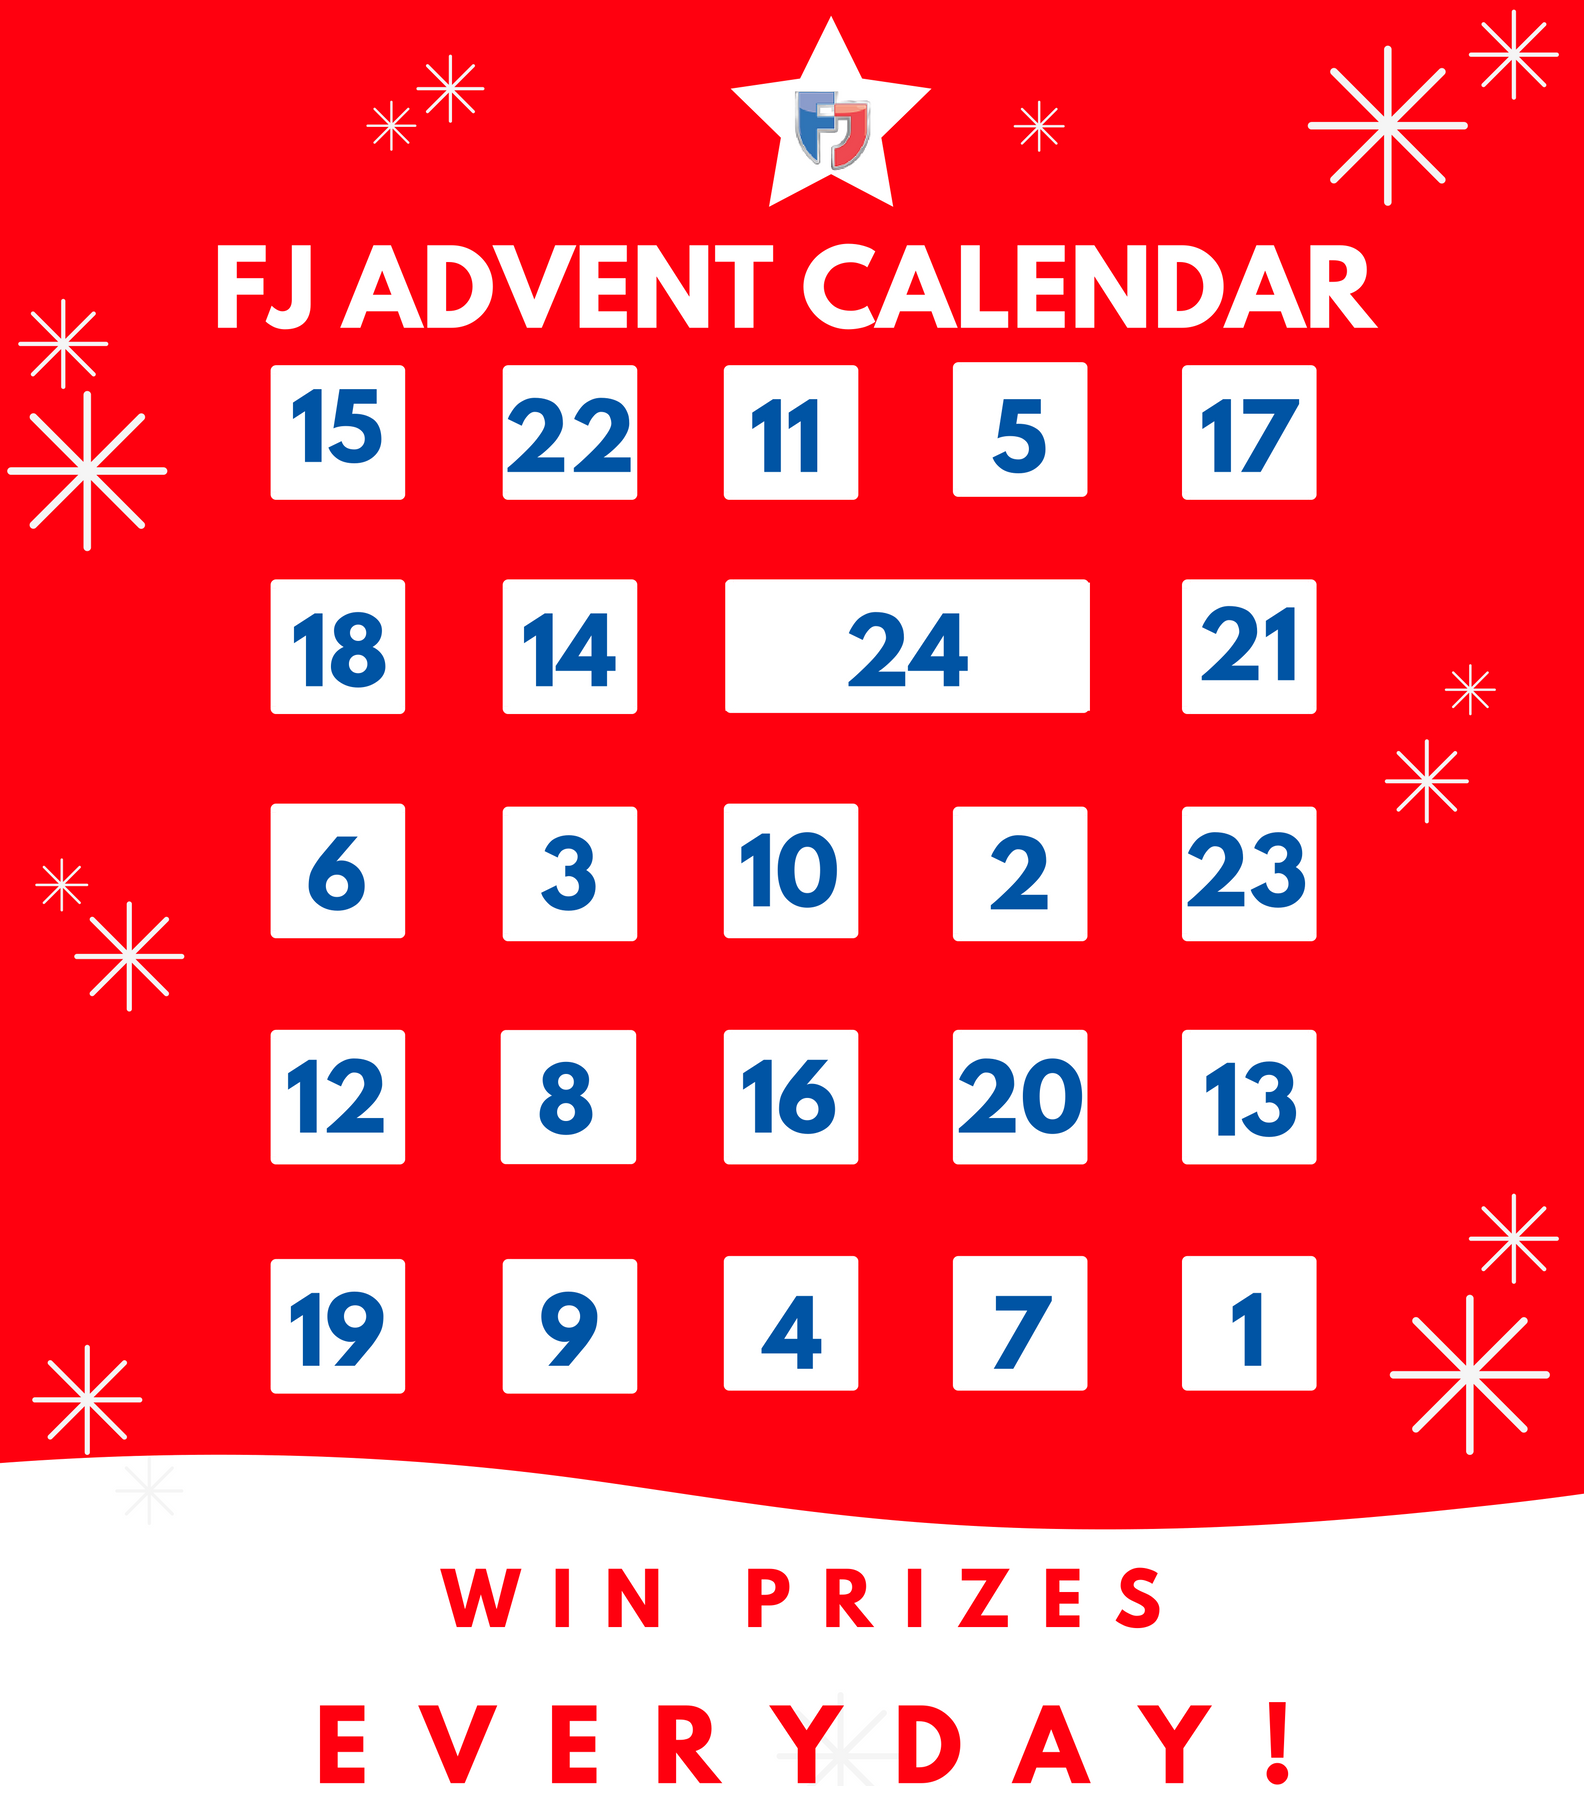 FJ Advent Calendar